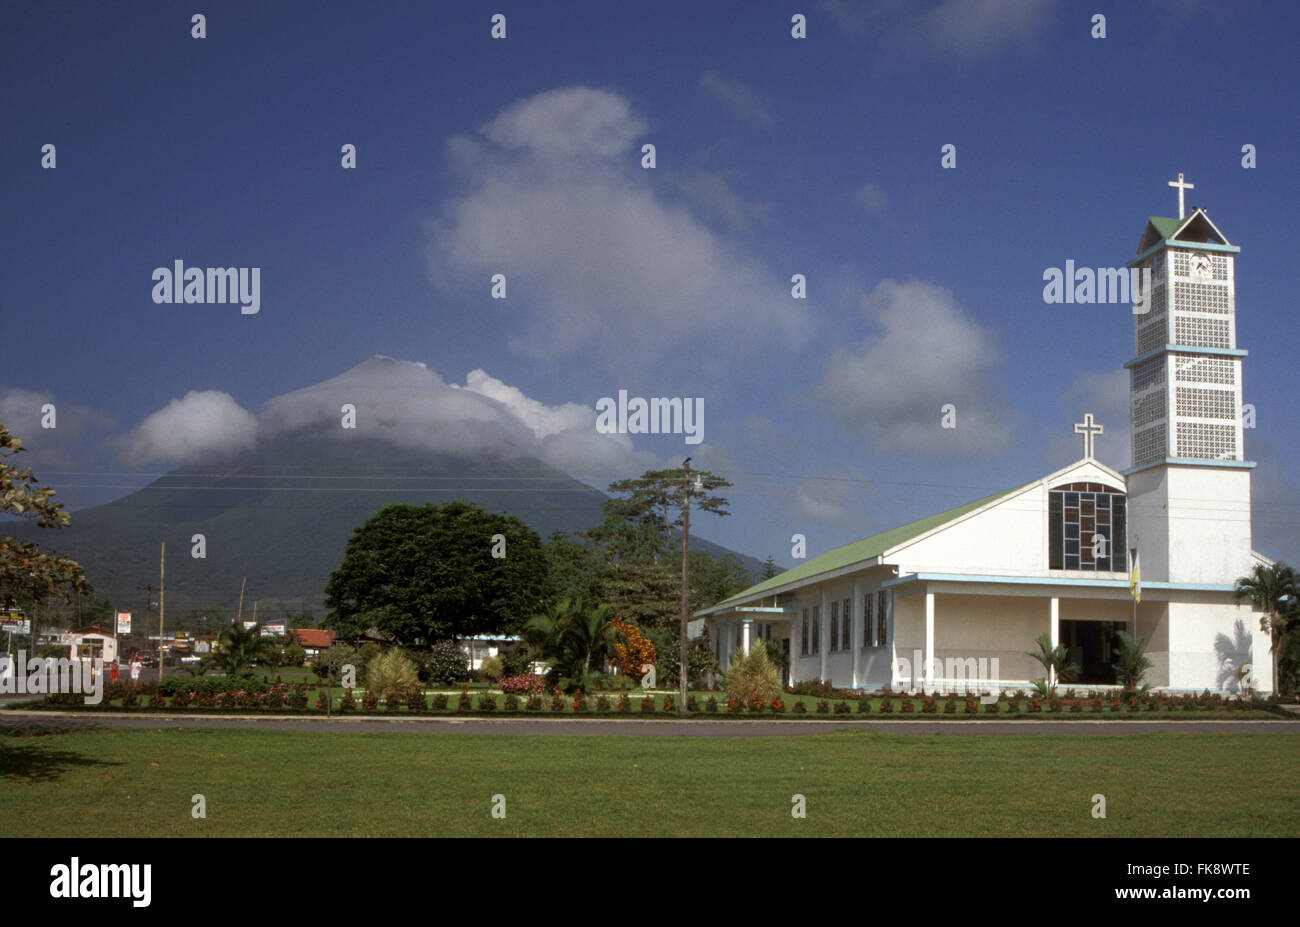 Church in La Fortuna with Volcan Arenal in distance, Guanacaste, Costa Rica - Stock Image